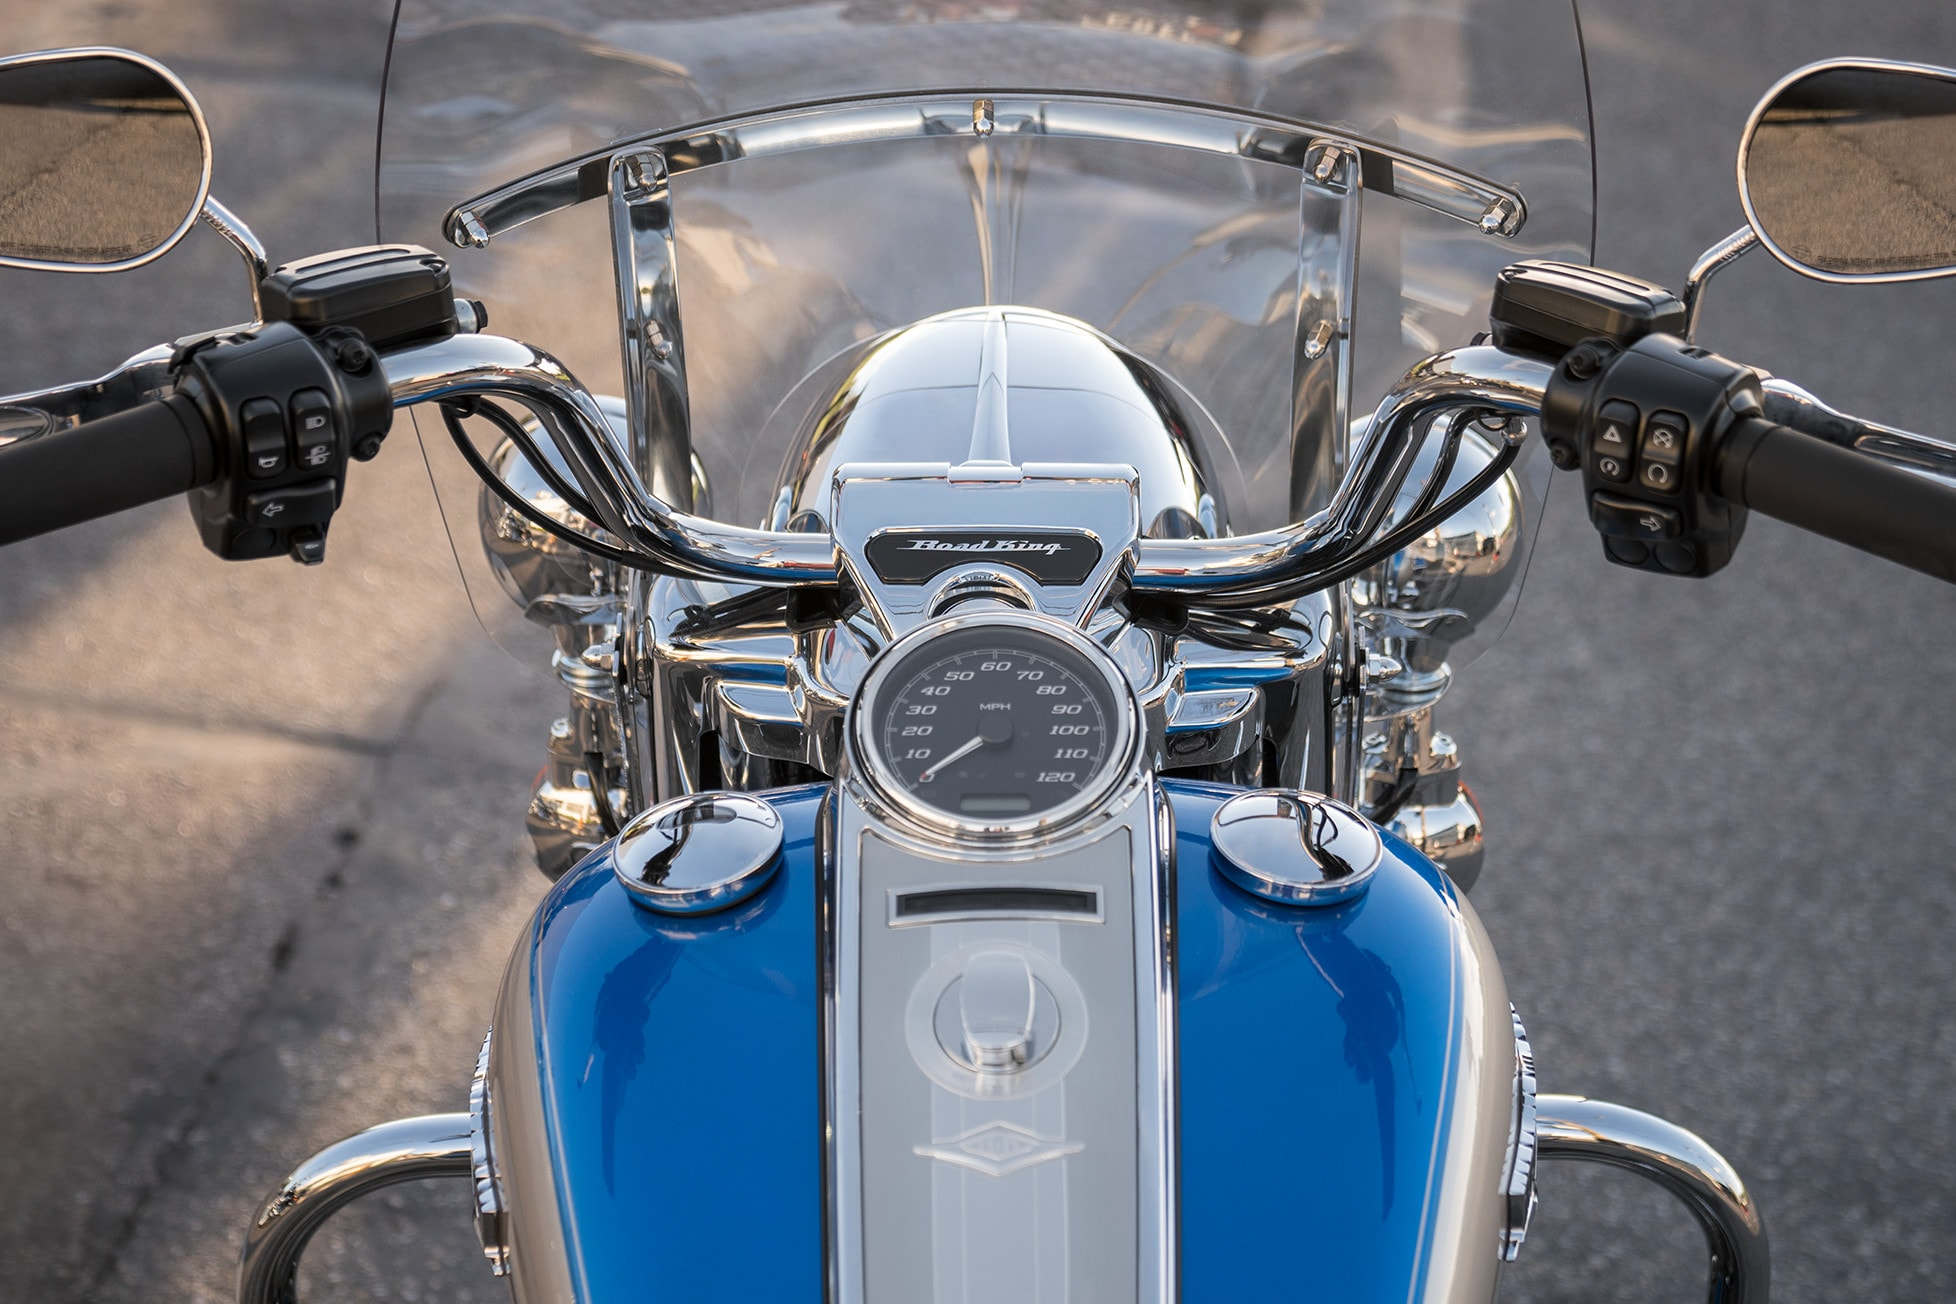 road king gallery 3?impolicy\=myresize\&rw\=1137 2013 road glide gas tank 4 wire diagram,glide \u2022 indy500 co  at crackthecode.co